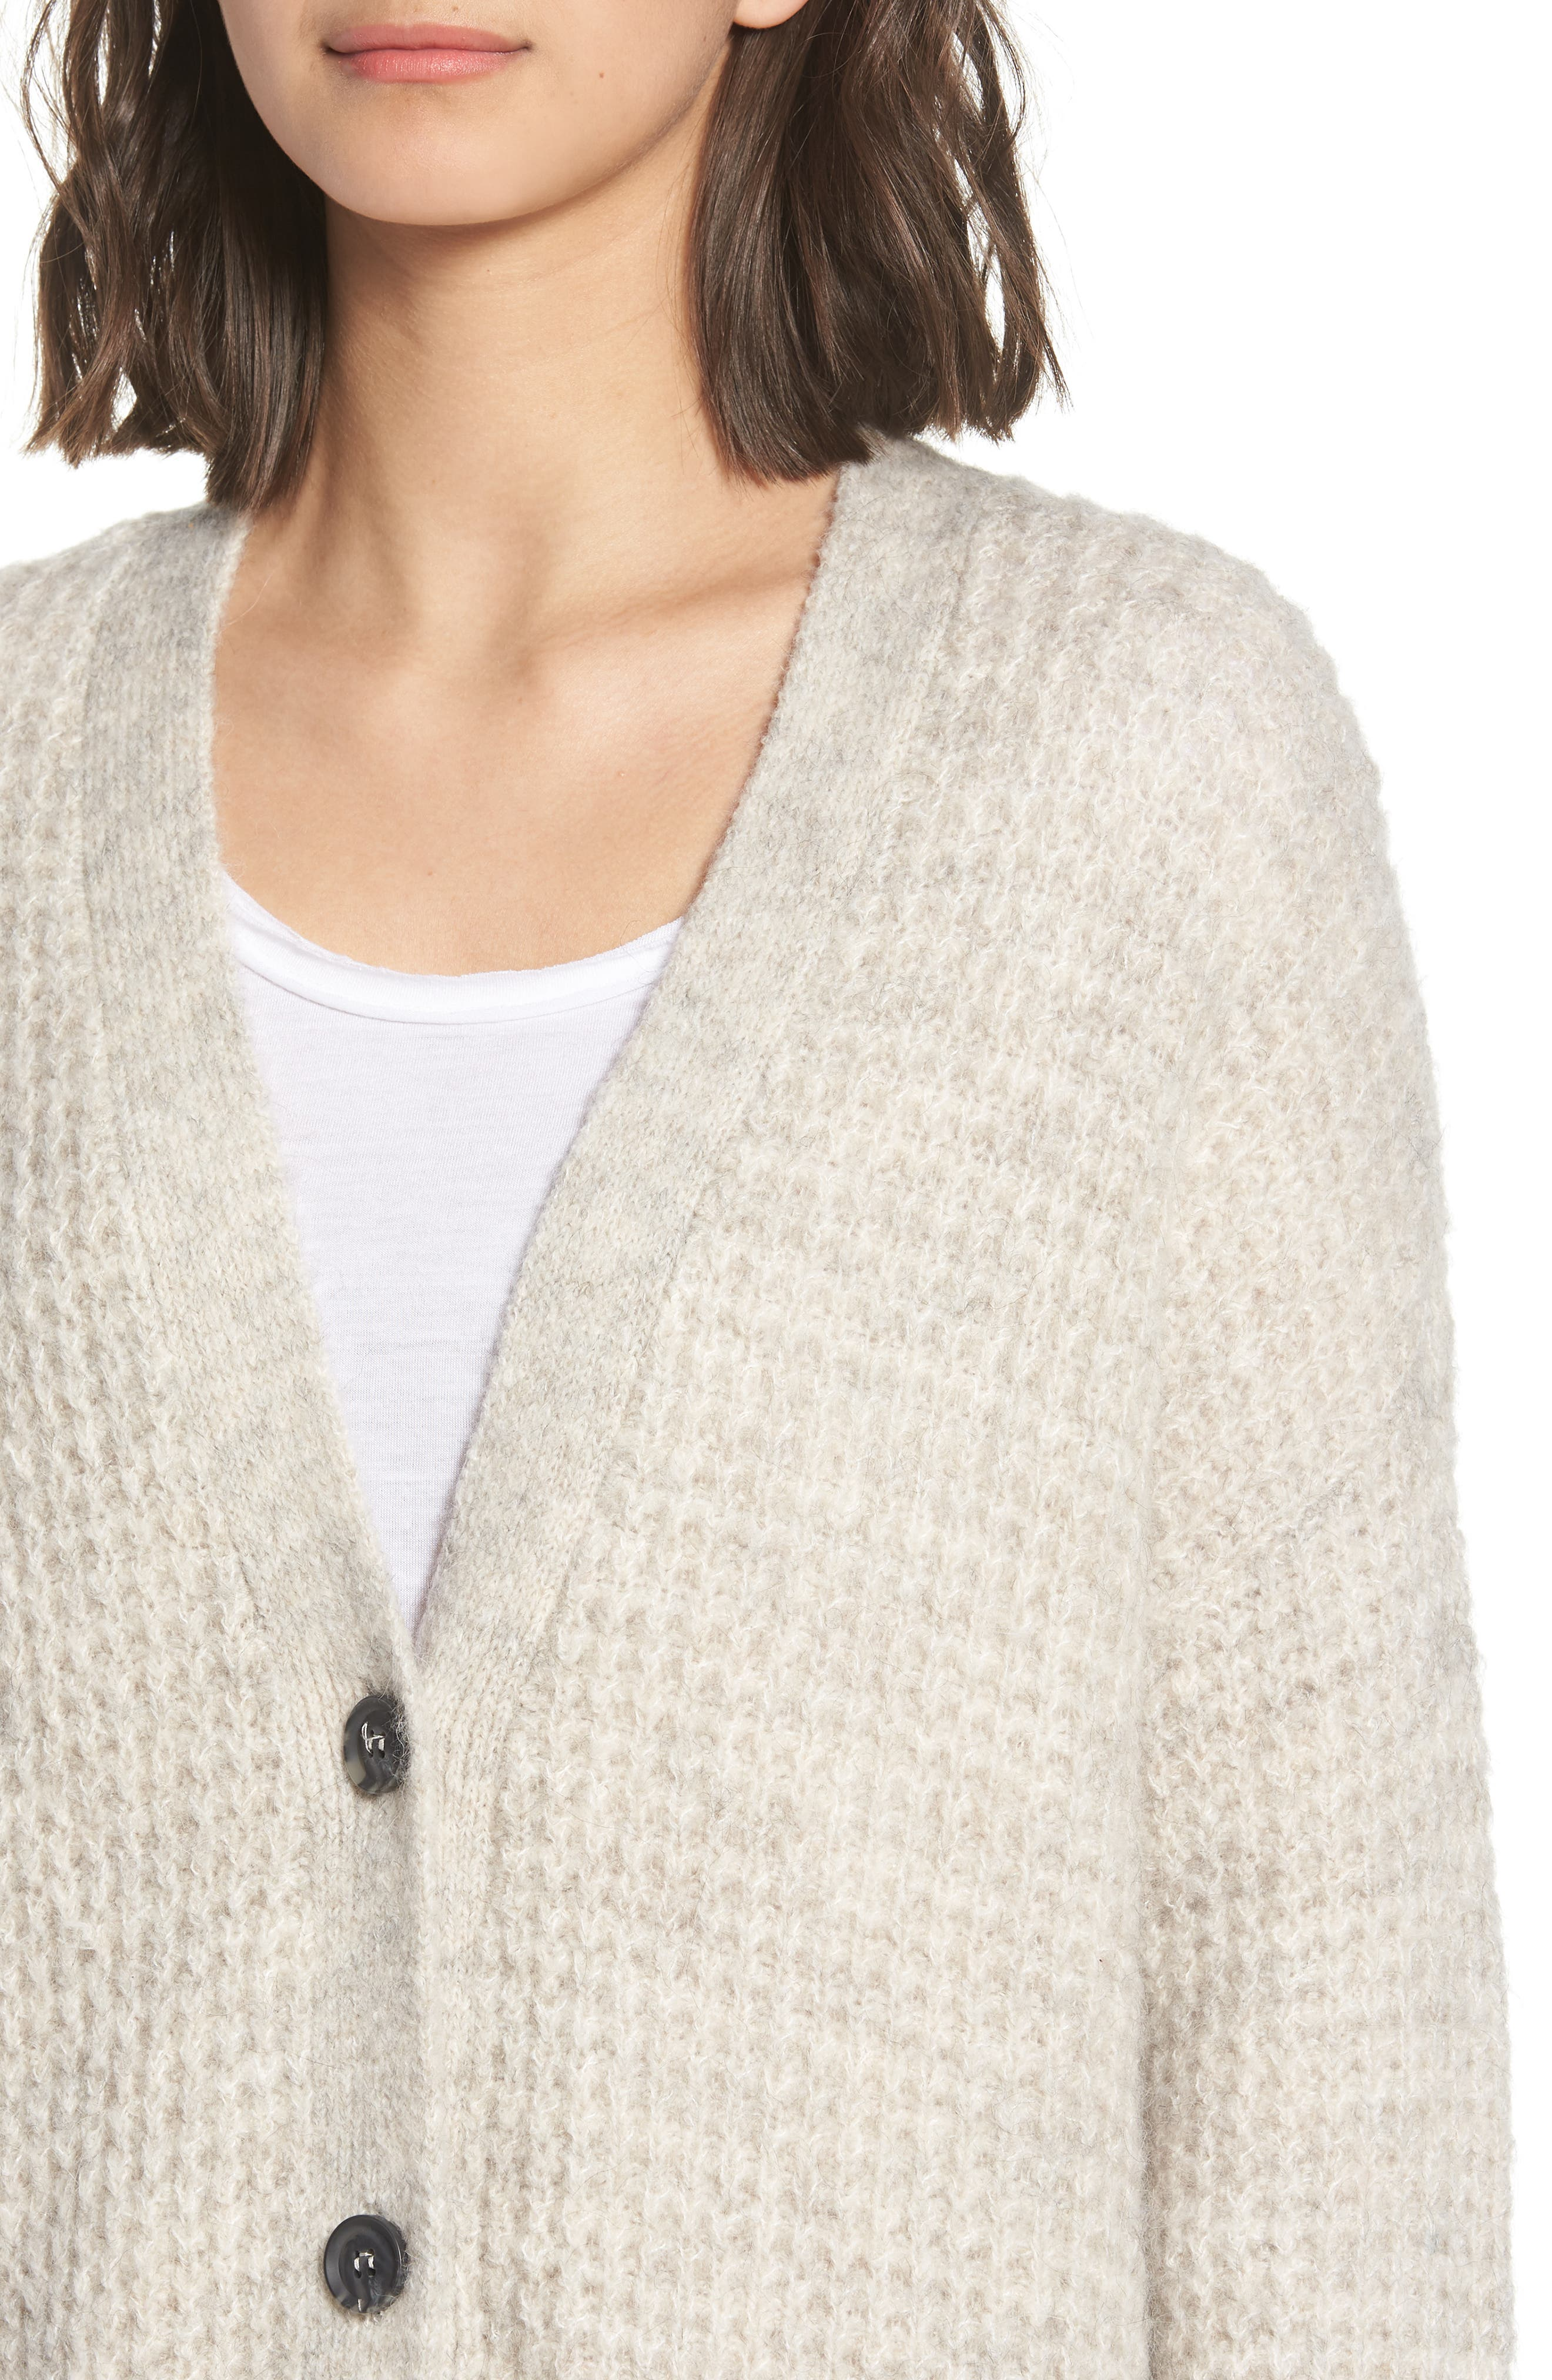 Oversized Waffle Stitch Cardigan,                             Alternate thumbnail 6, color,                             BEIGE BIRCH